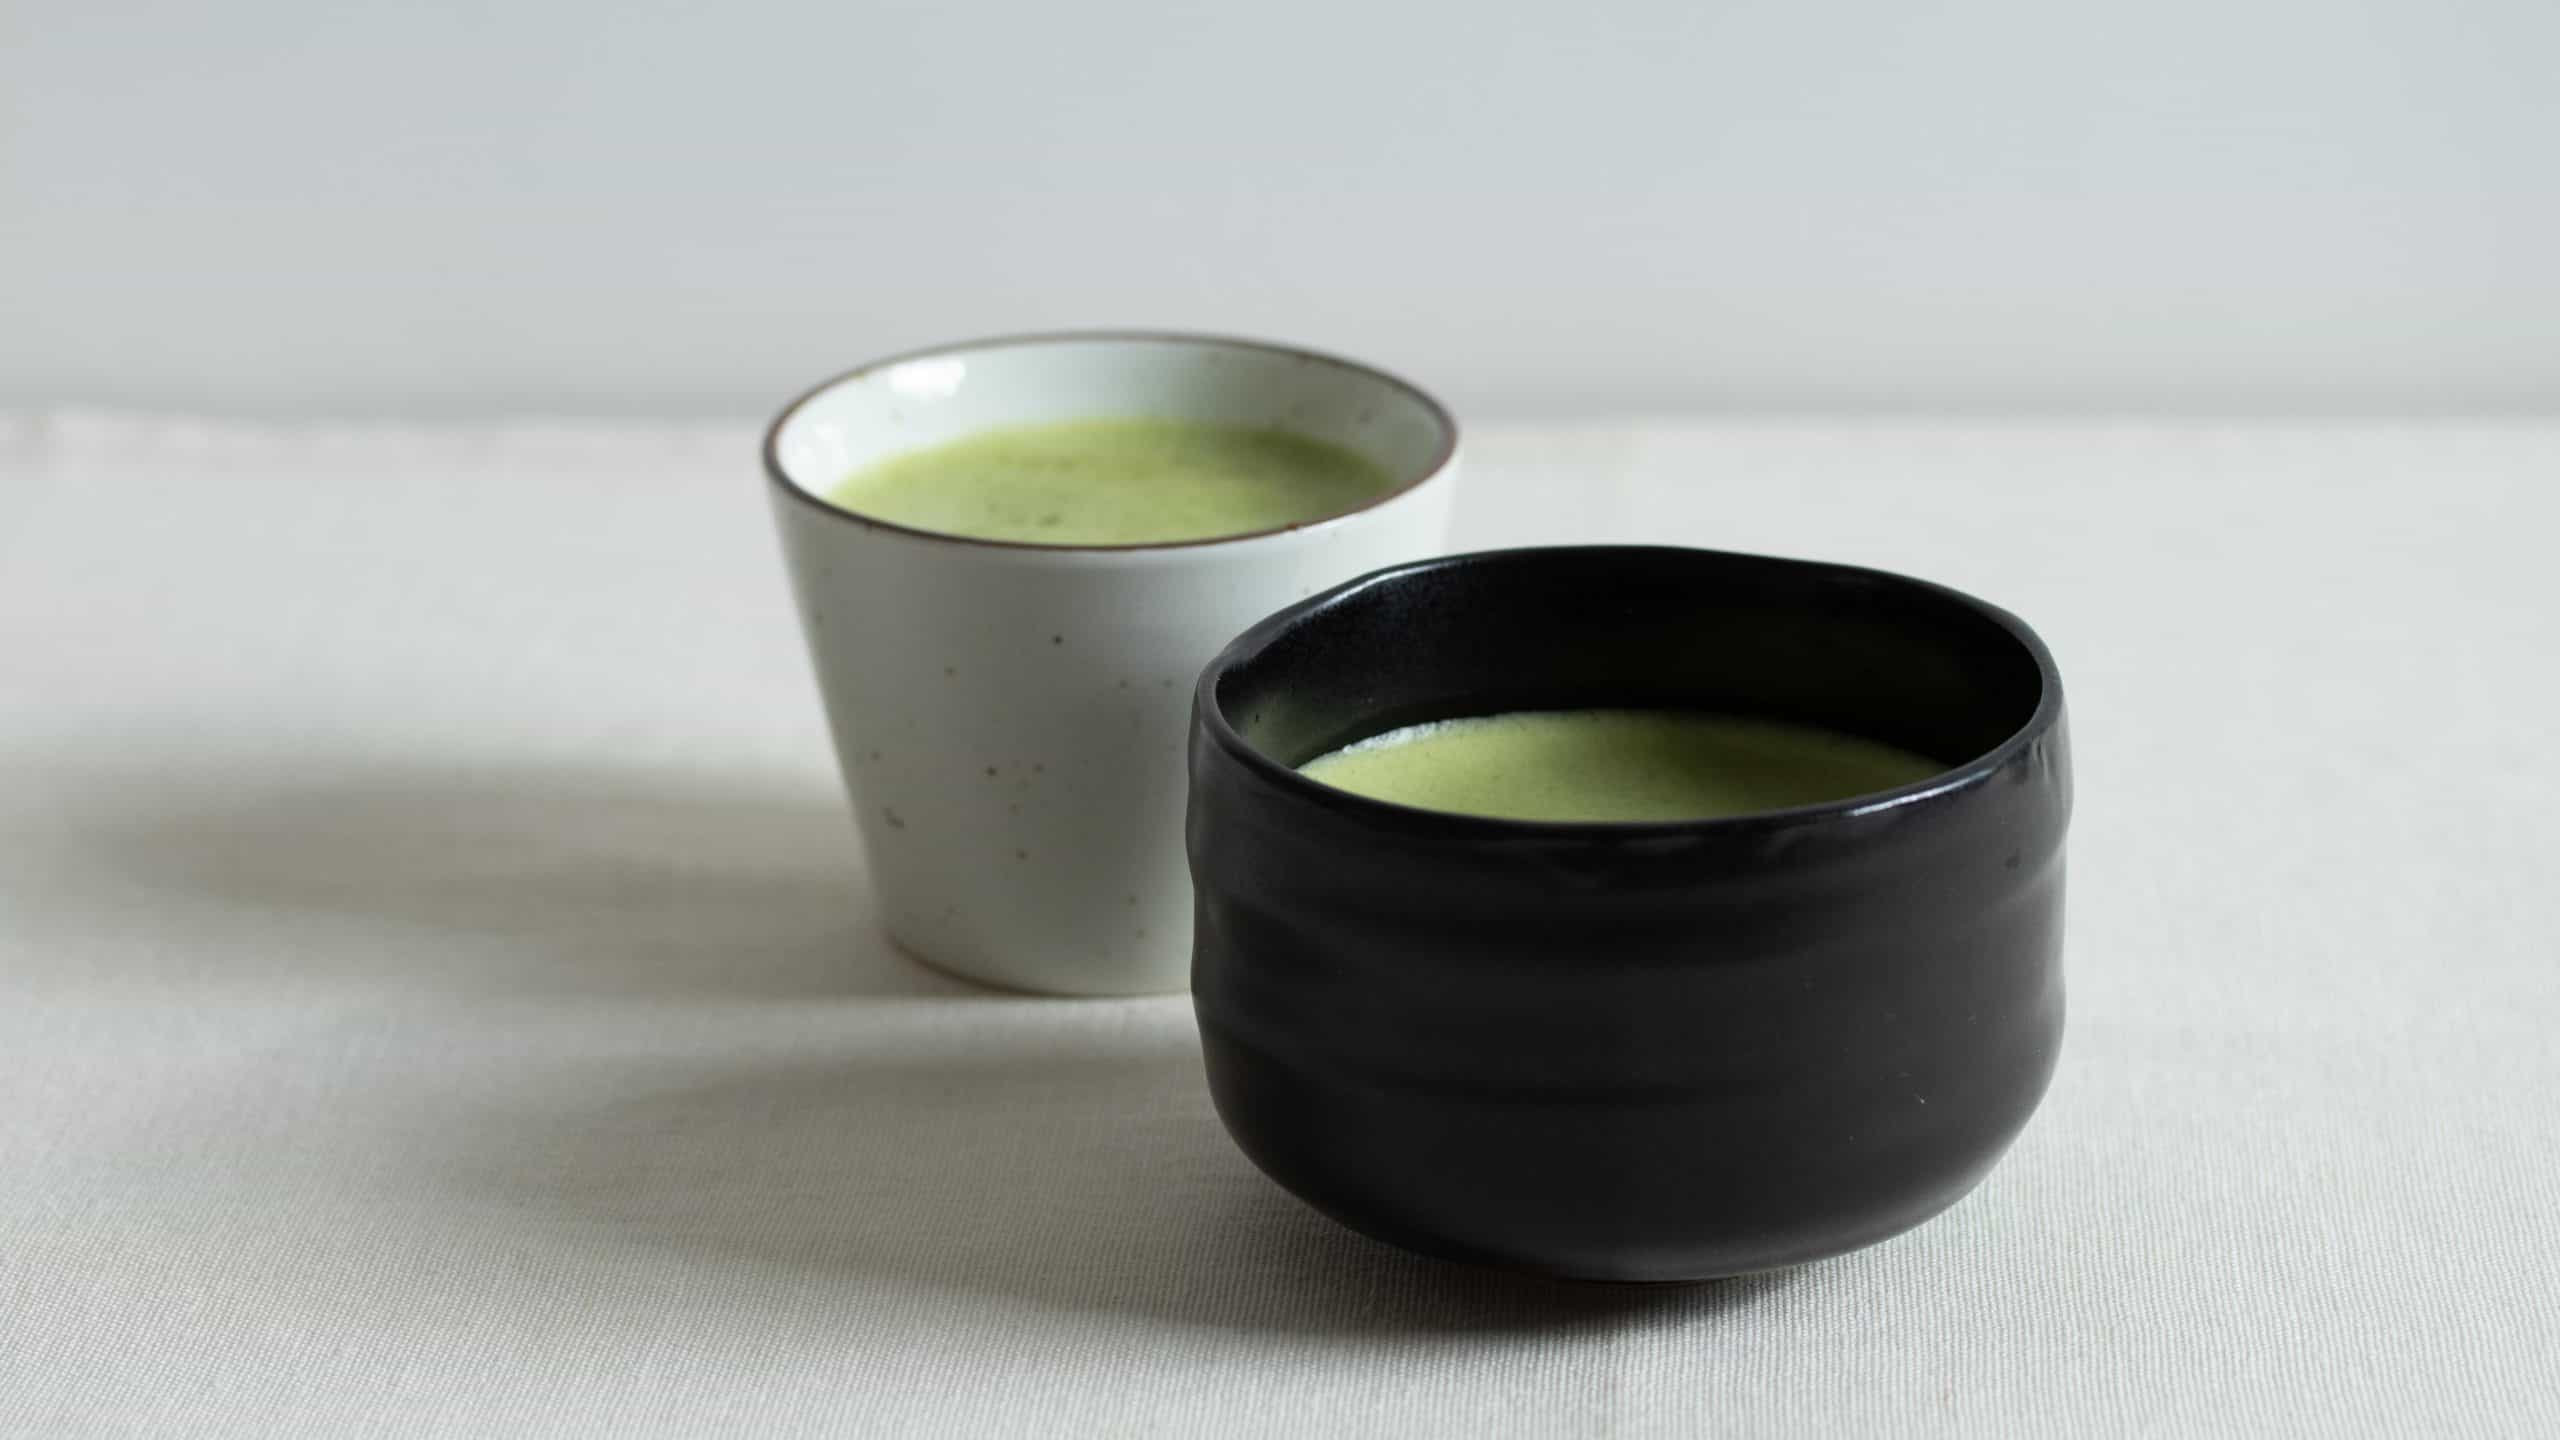 usucha in a black chawan bowl and a white bowl